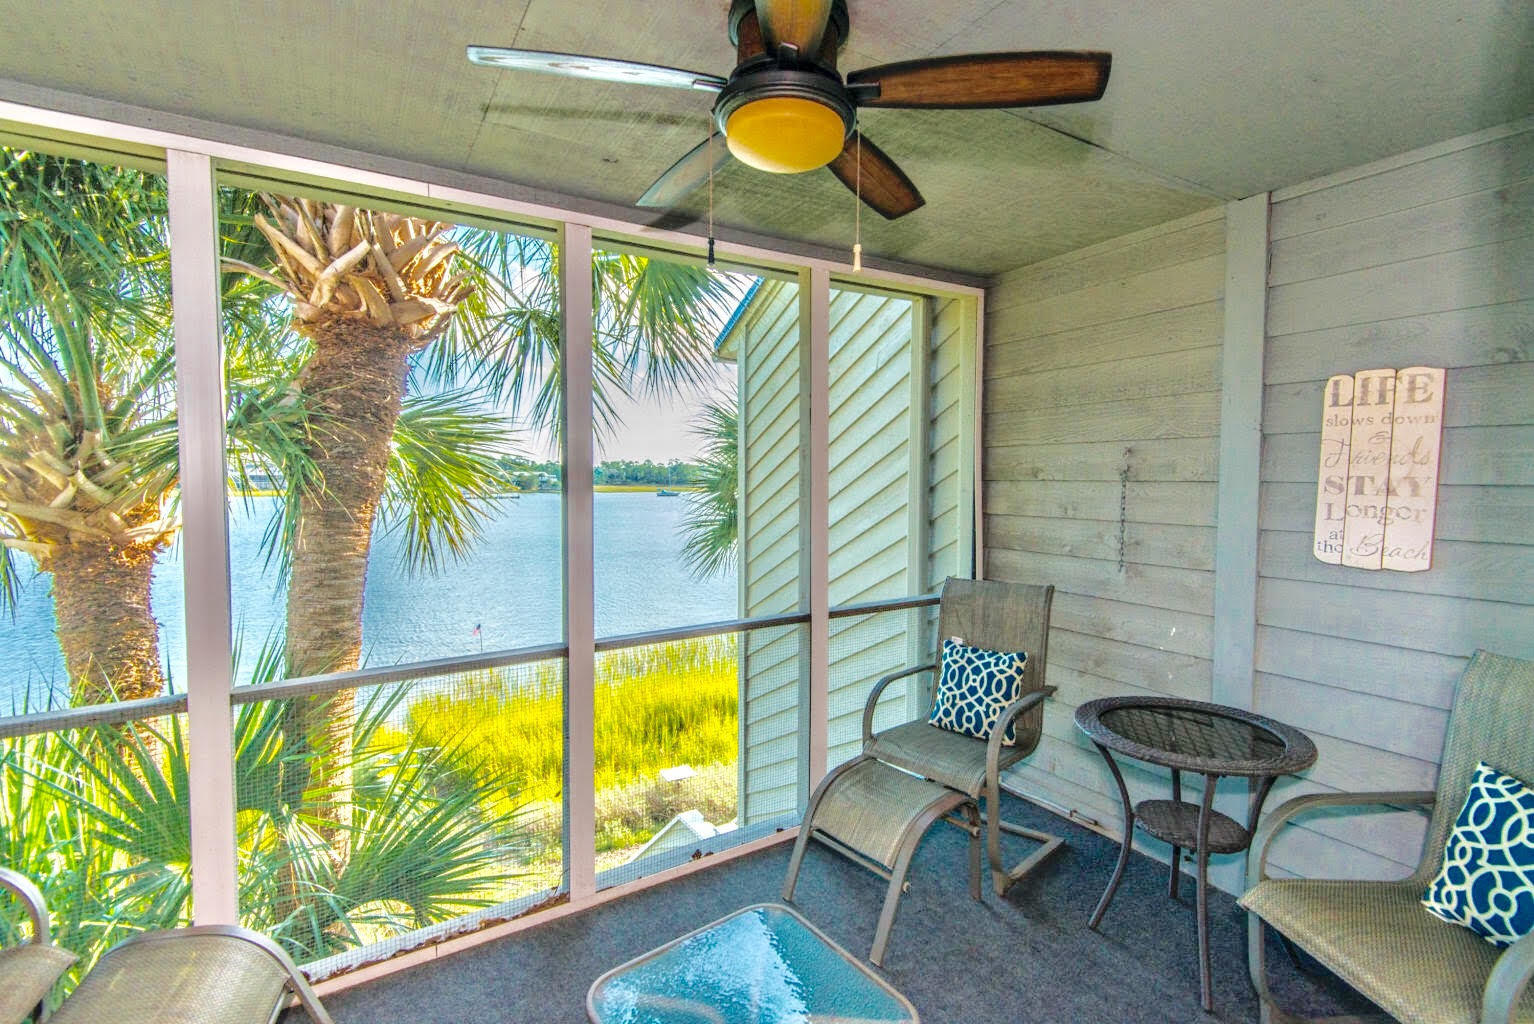 Mariners Cay Homes For Sale - 42 Mariners Cay, Folly Beach, SC - 0